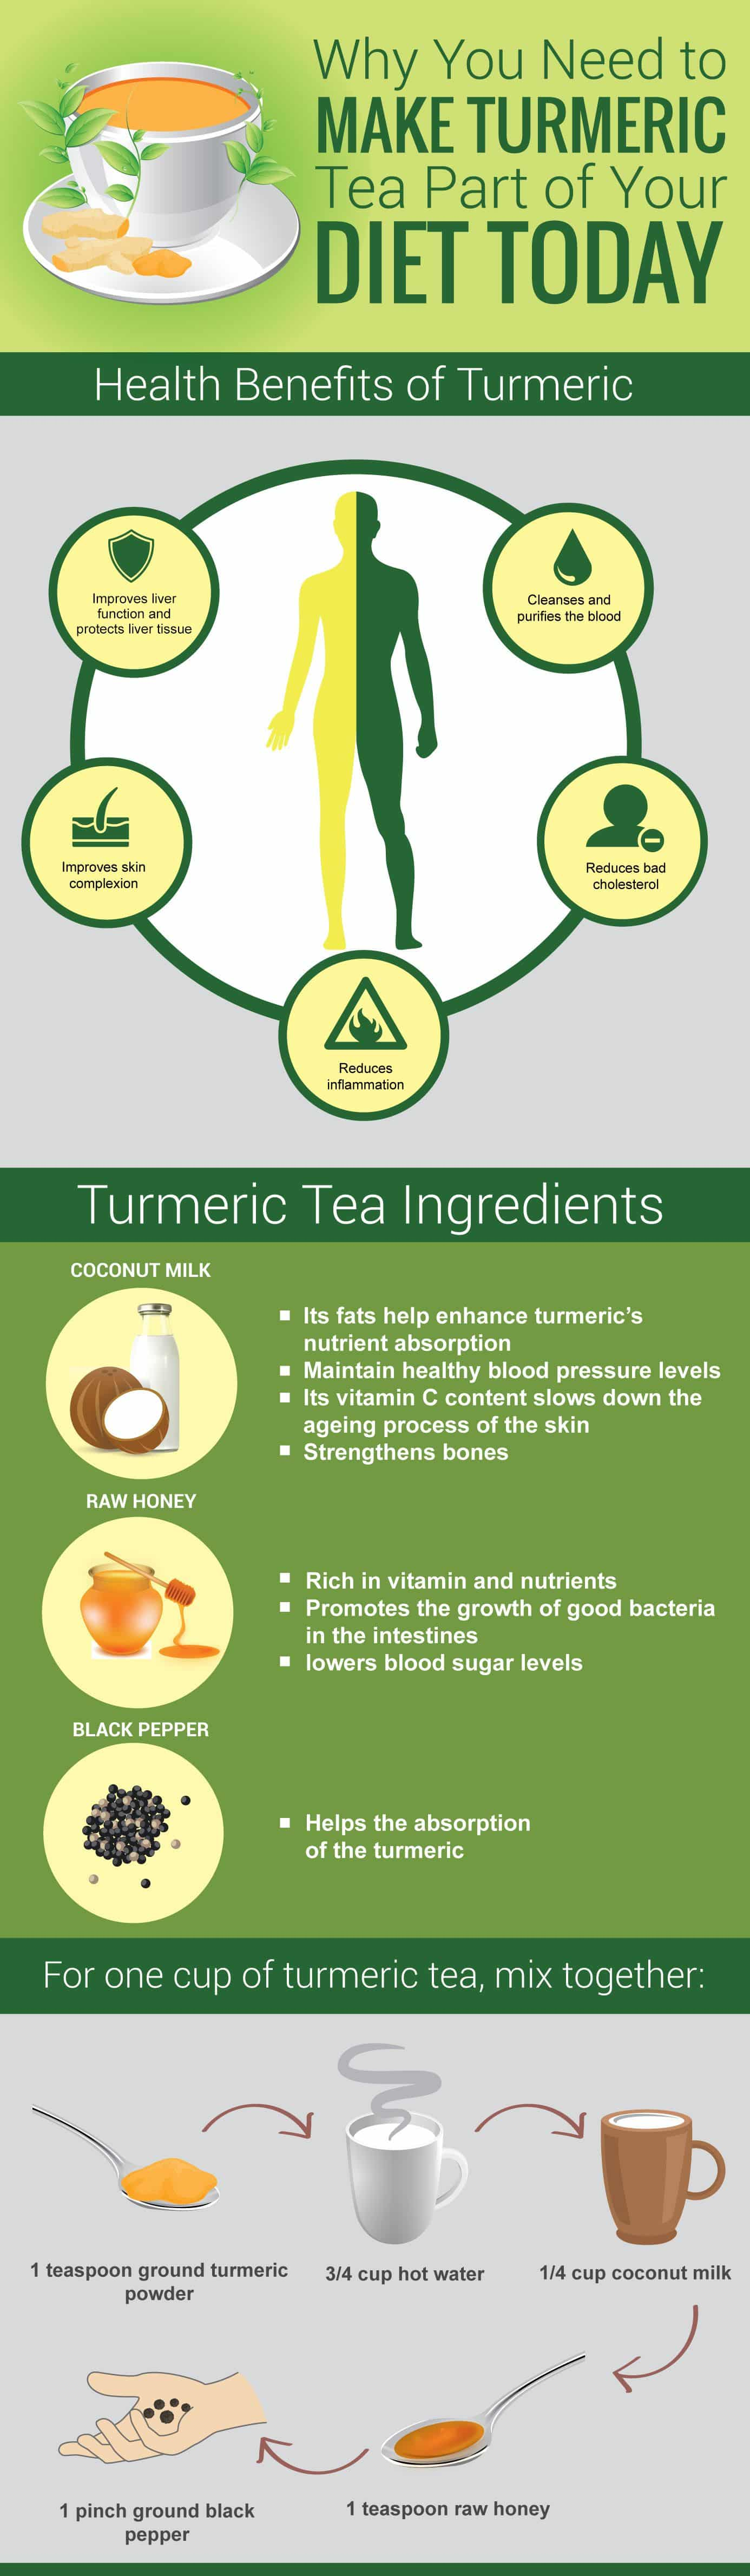 how to make turmeric tea